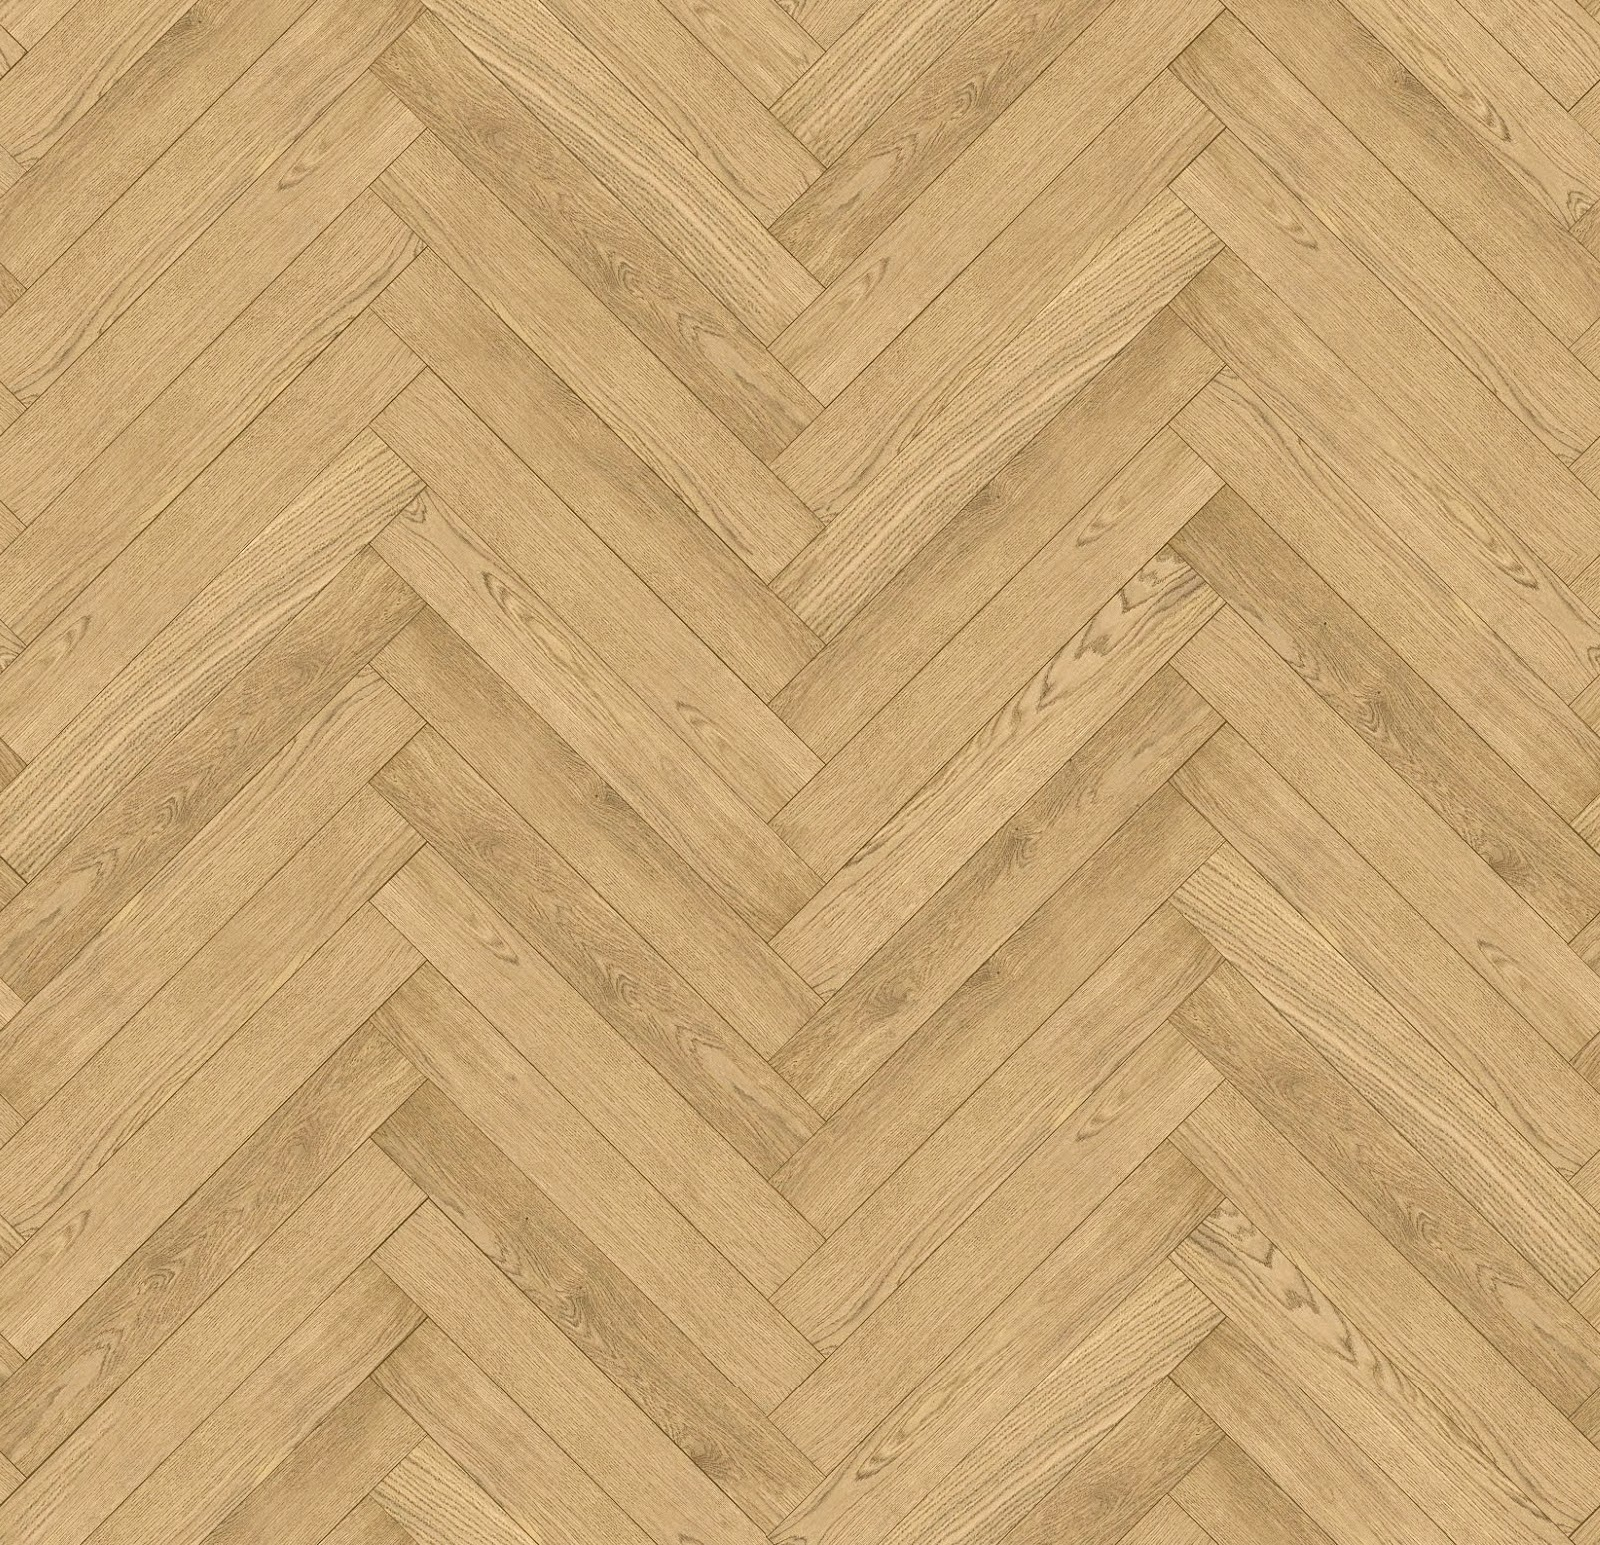 Parqet Seamless Wood Parquet Texture 43 Maps Texturise Free